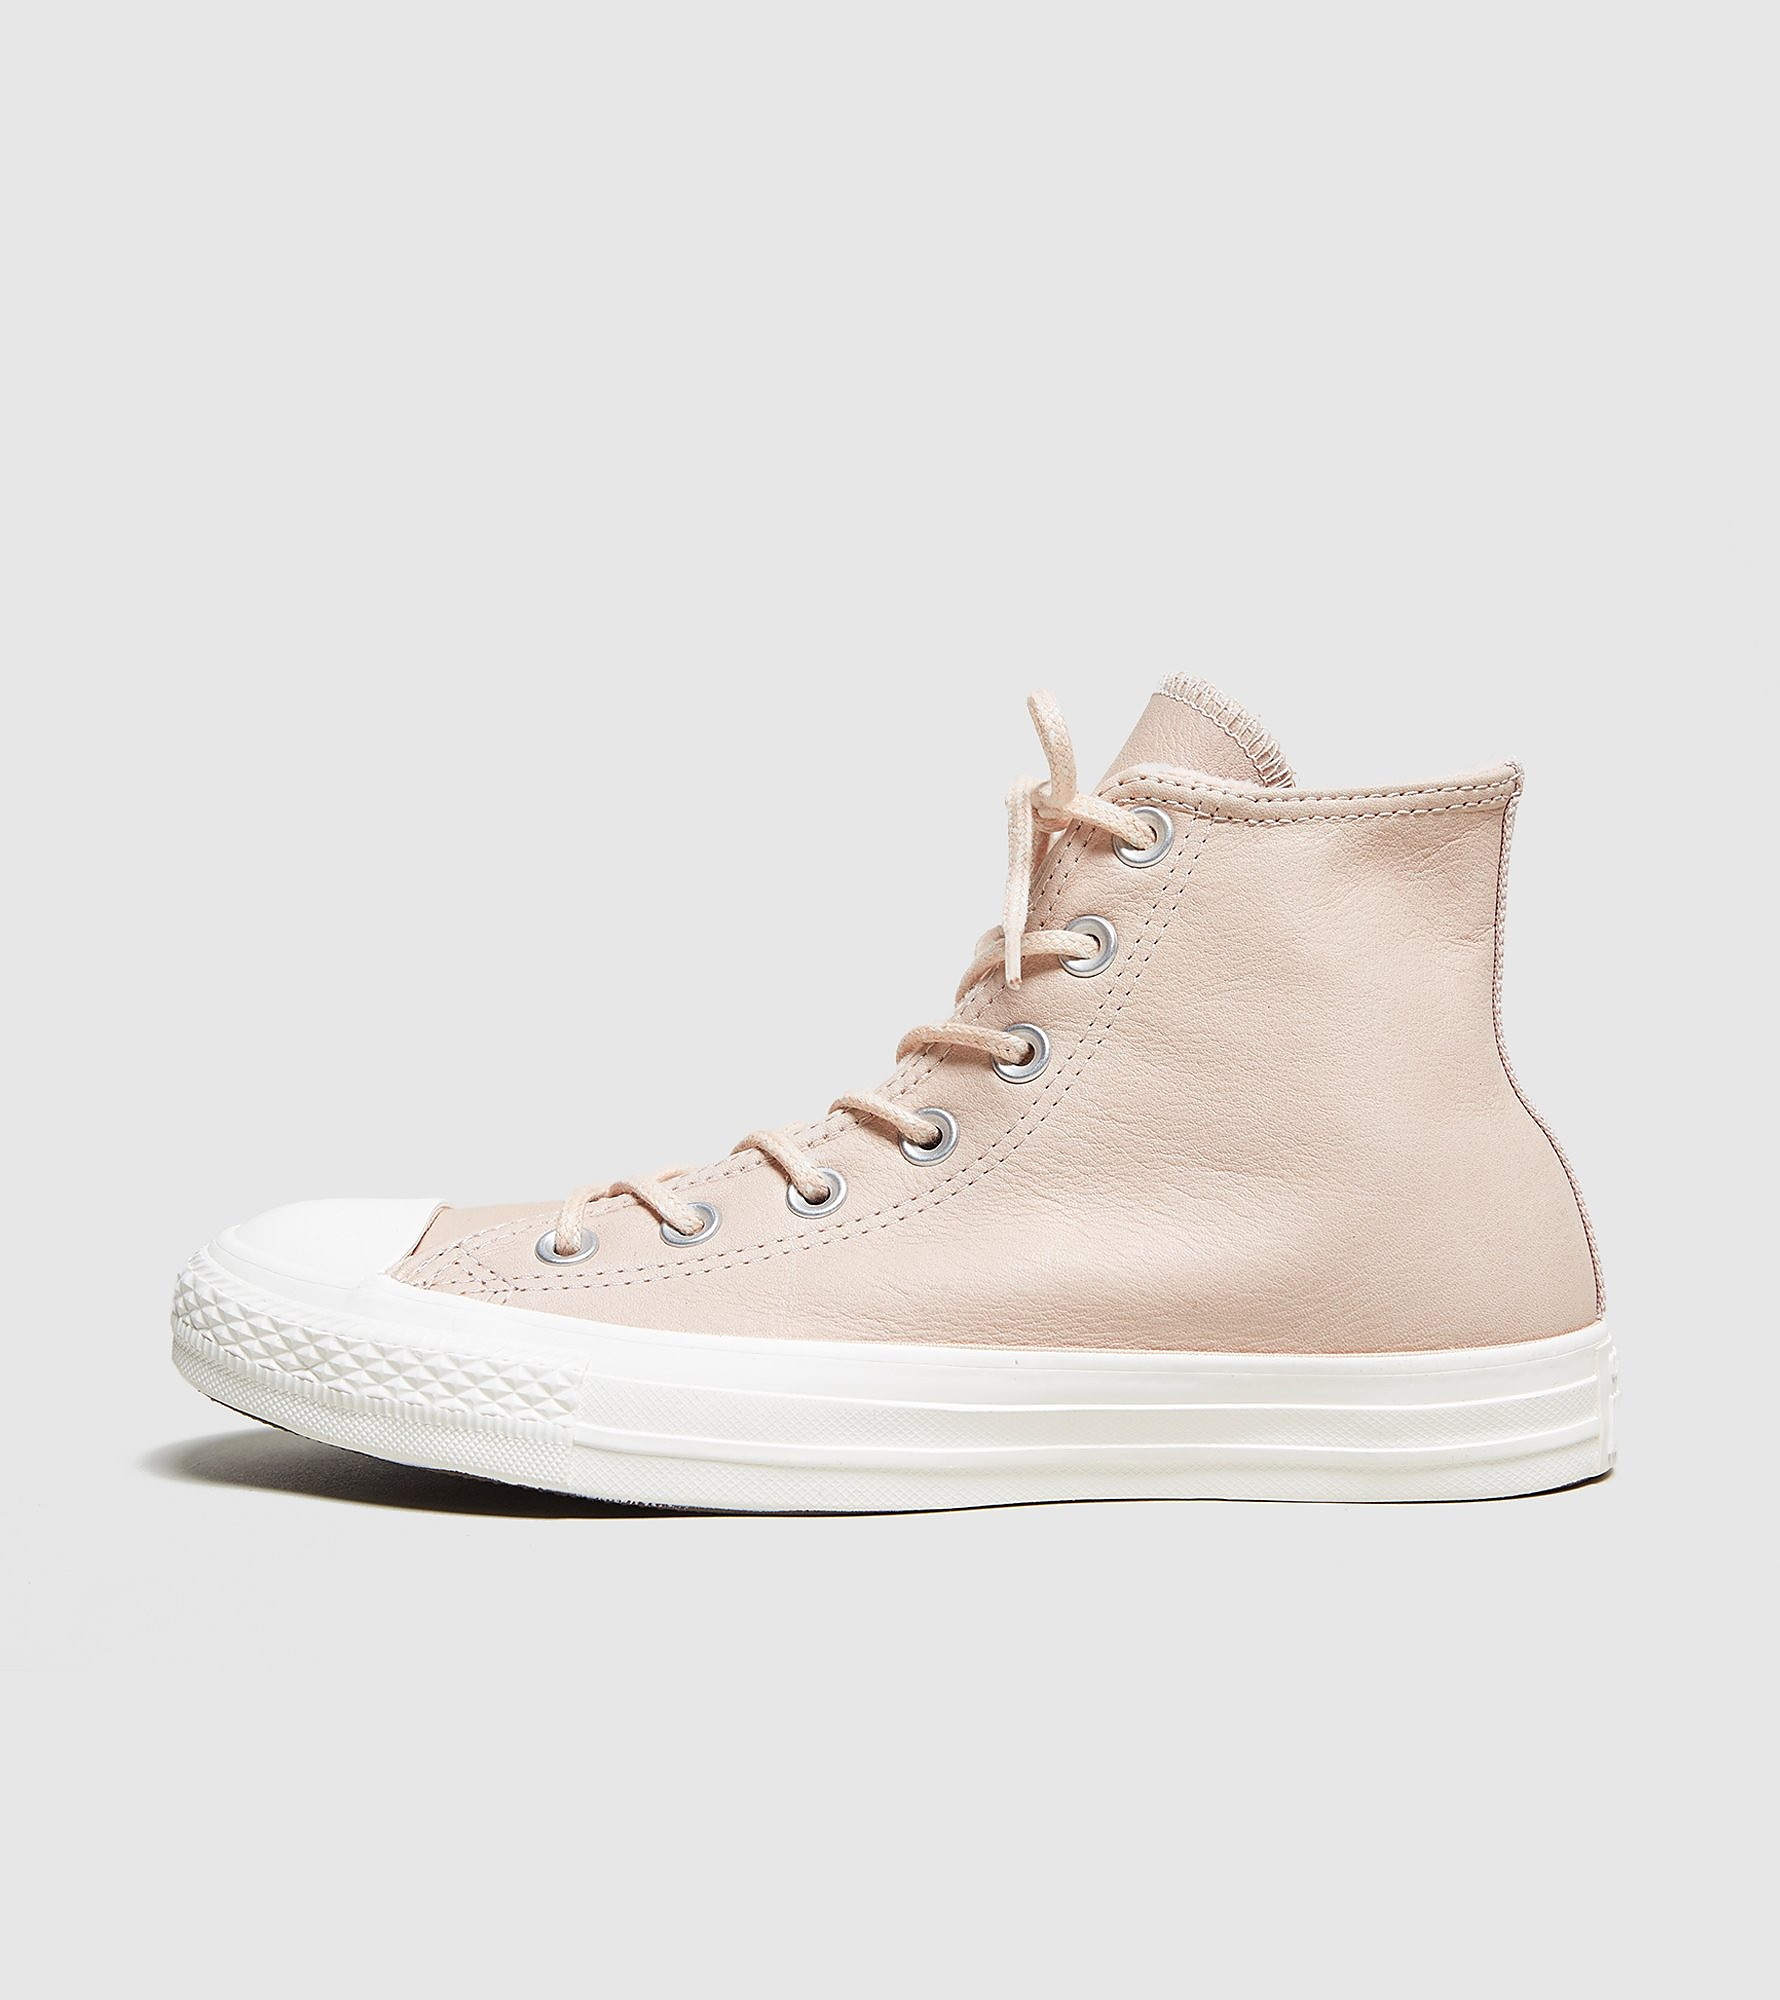 Converse Chuck Taylor All Star Hi Women's